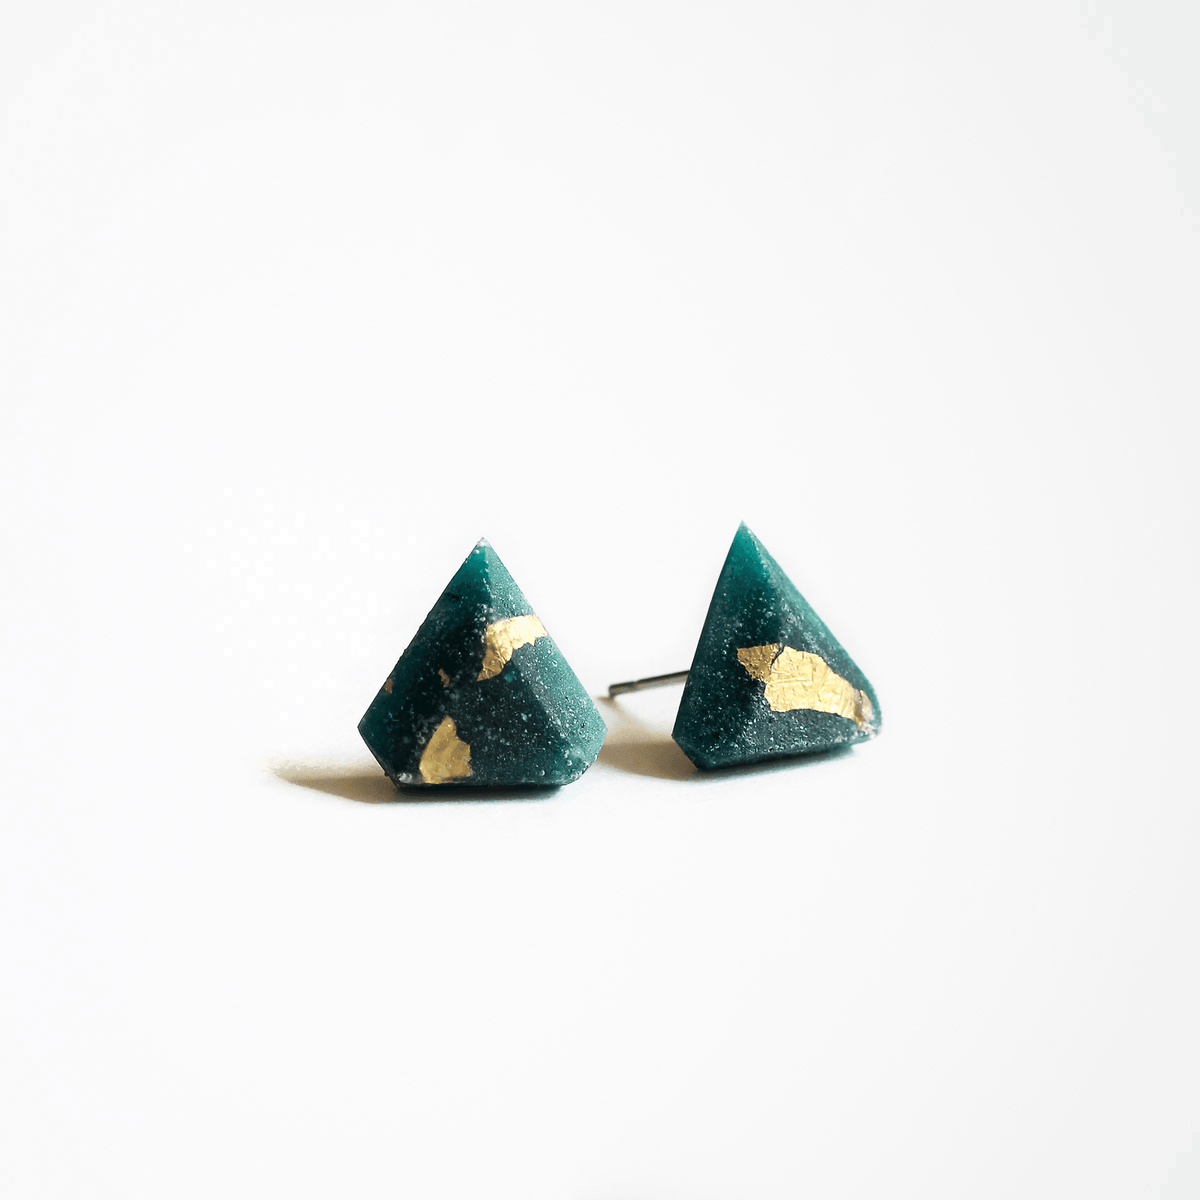 Forest Green Diamant Stud Earrings - Handmade in Eco-friendly Resin & Gold Leaf - Sold by Chic & Basta